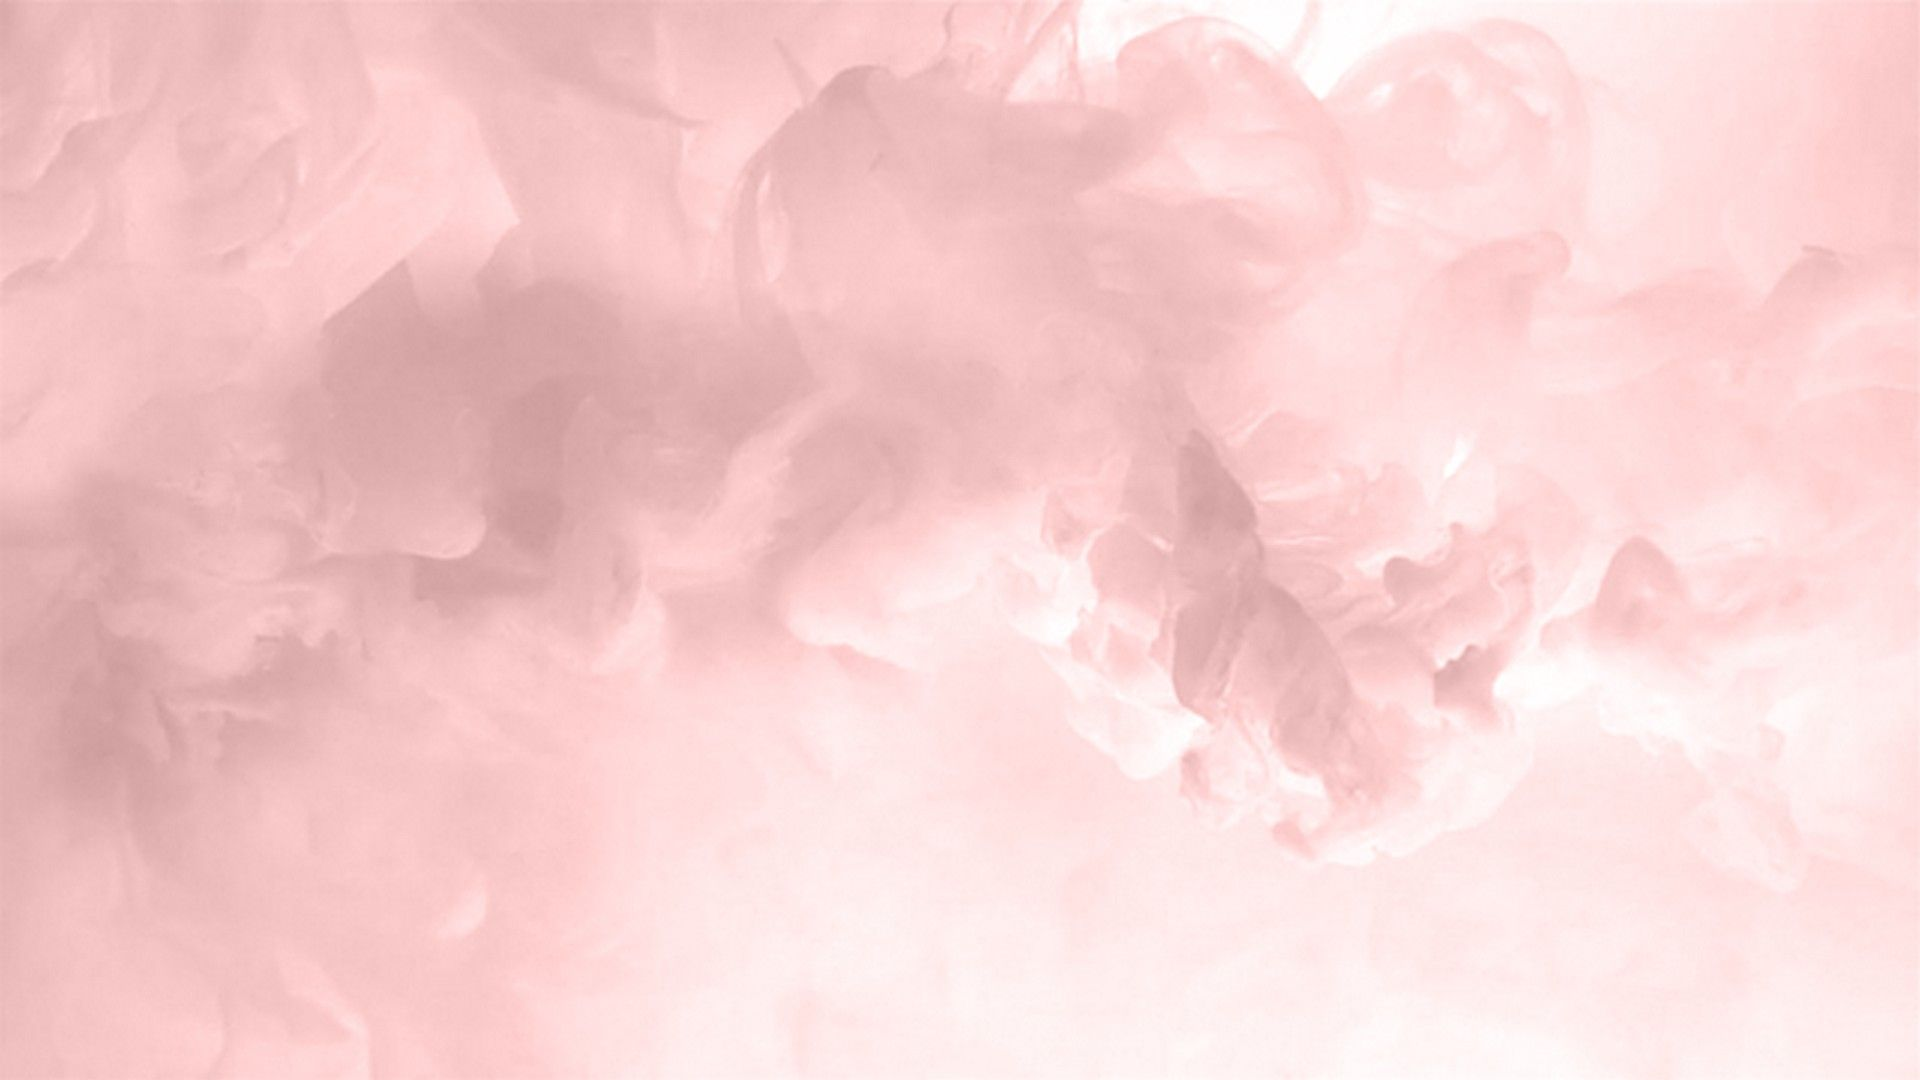 Rose Gold Wallpaper For Desktop Best Hd Wallpapers Rose Gold Wallpaper Rose Gold Marble Wallpaper Marble Desktop Wallpaper